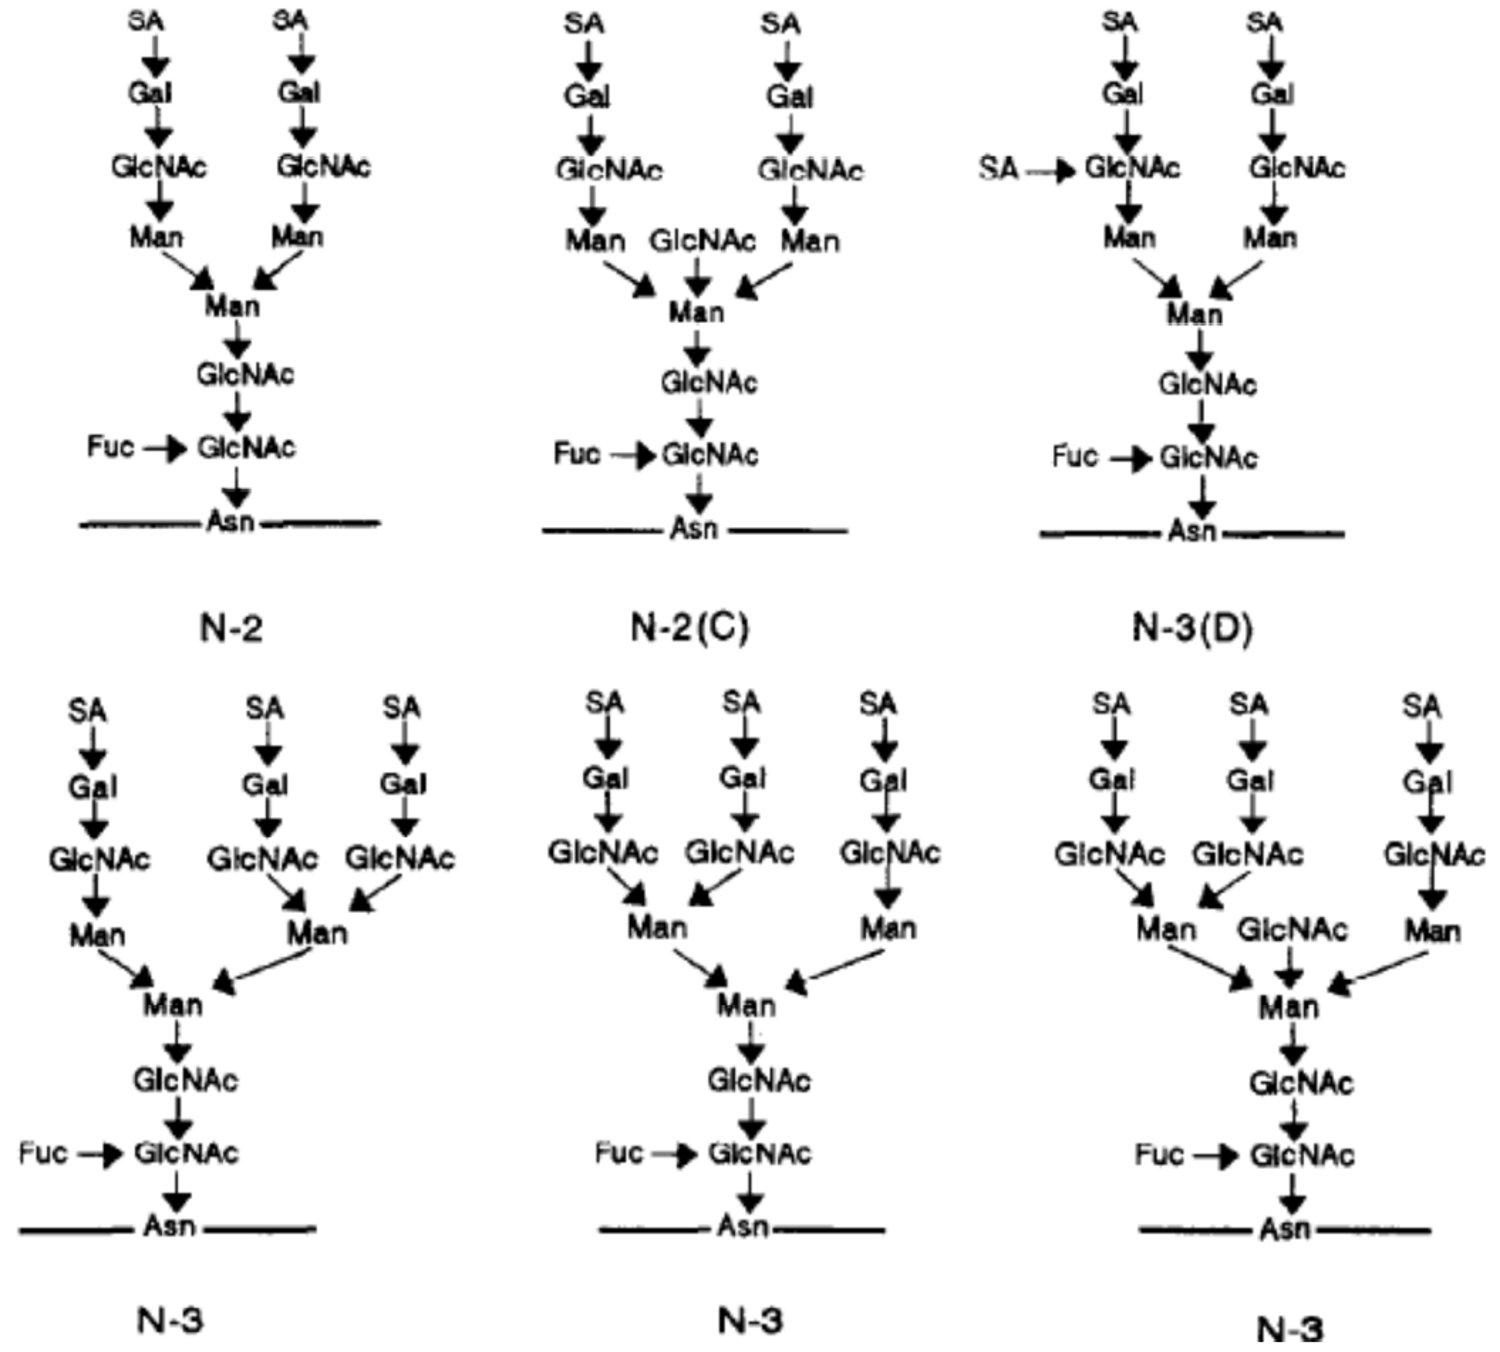 Structural and Functional Roles of FSH and LH as